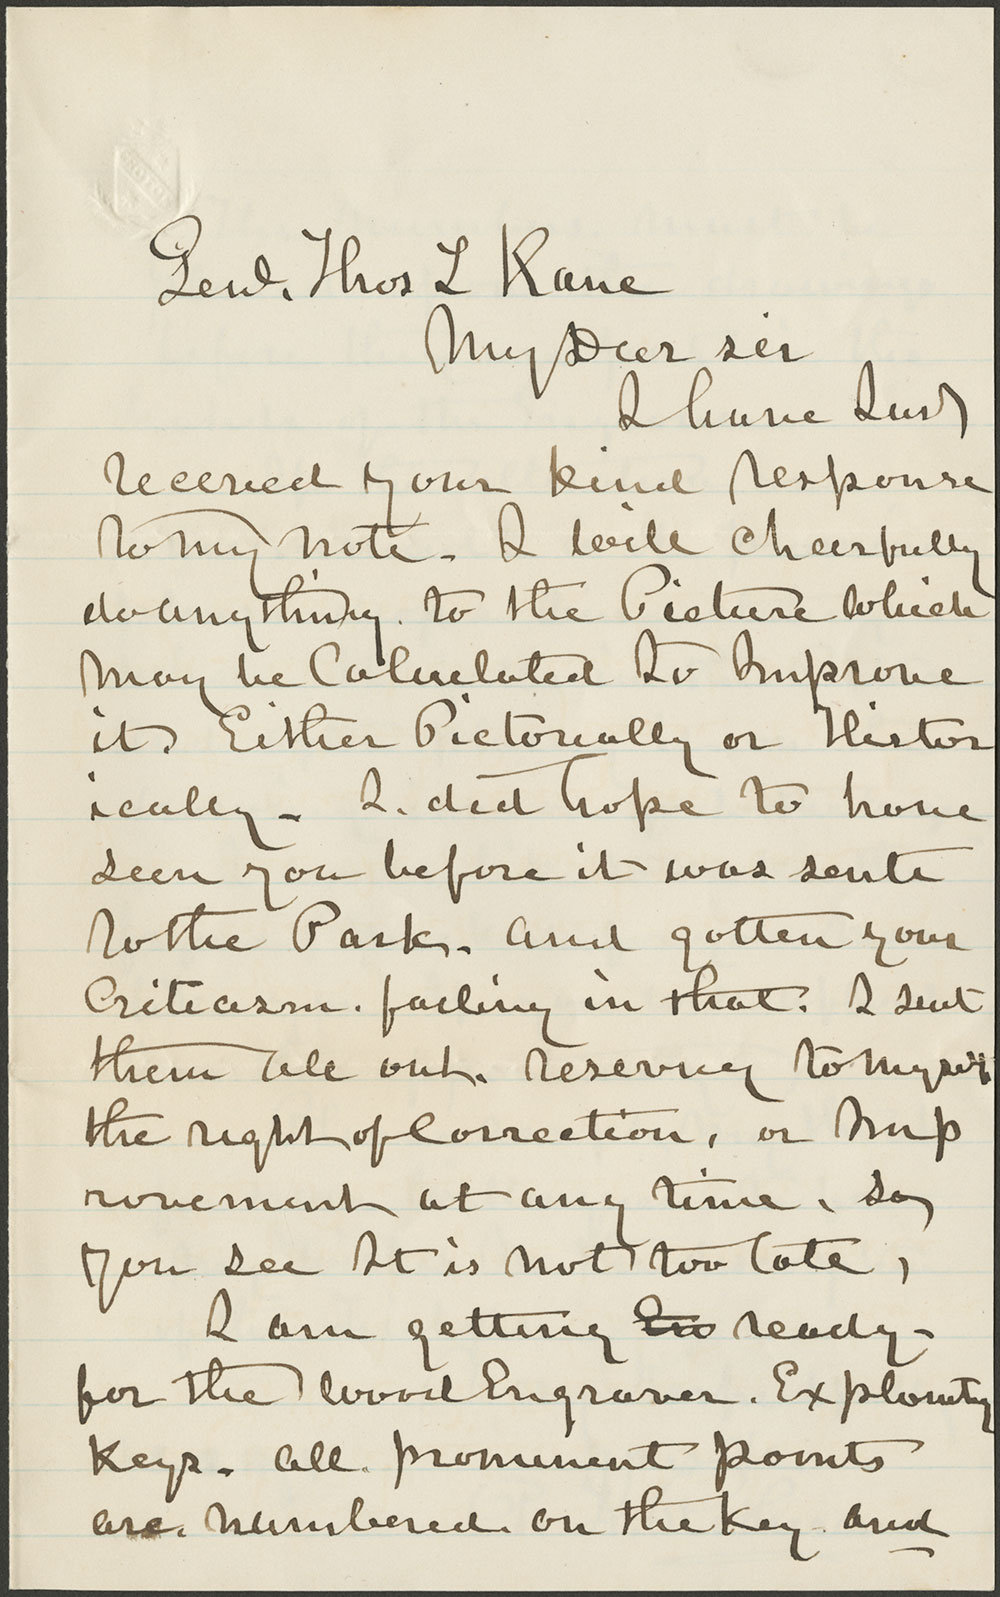 Peter F. Rothermel to General Thomas L. Kane. 12 February, 1874 (Vault MSS 792, Box 24, Folder 4, Item 3)